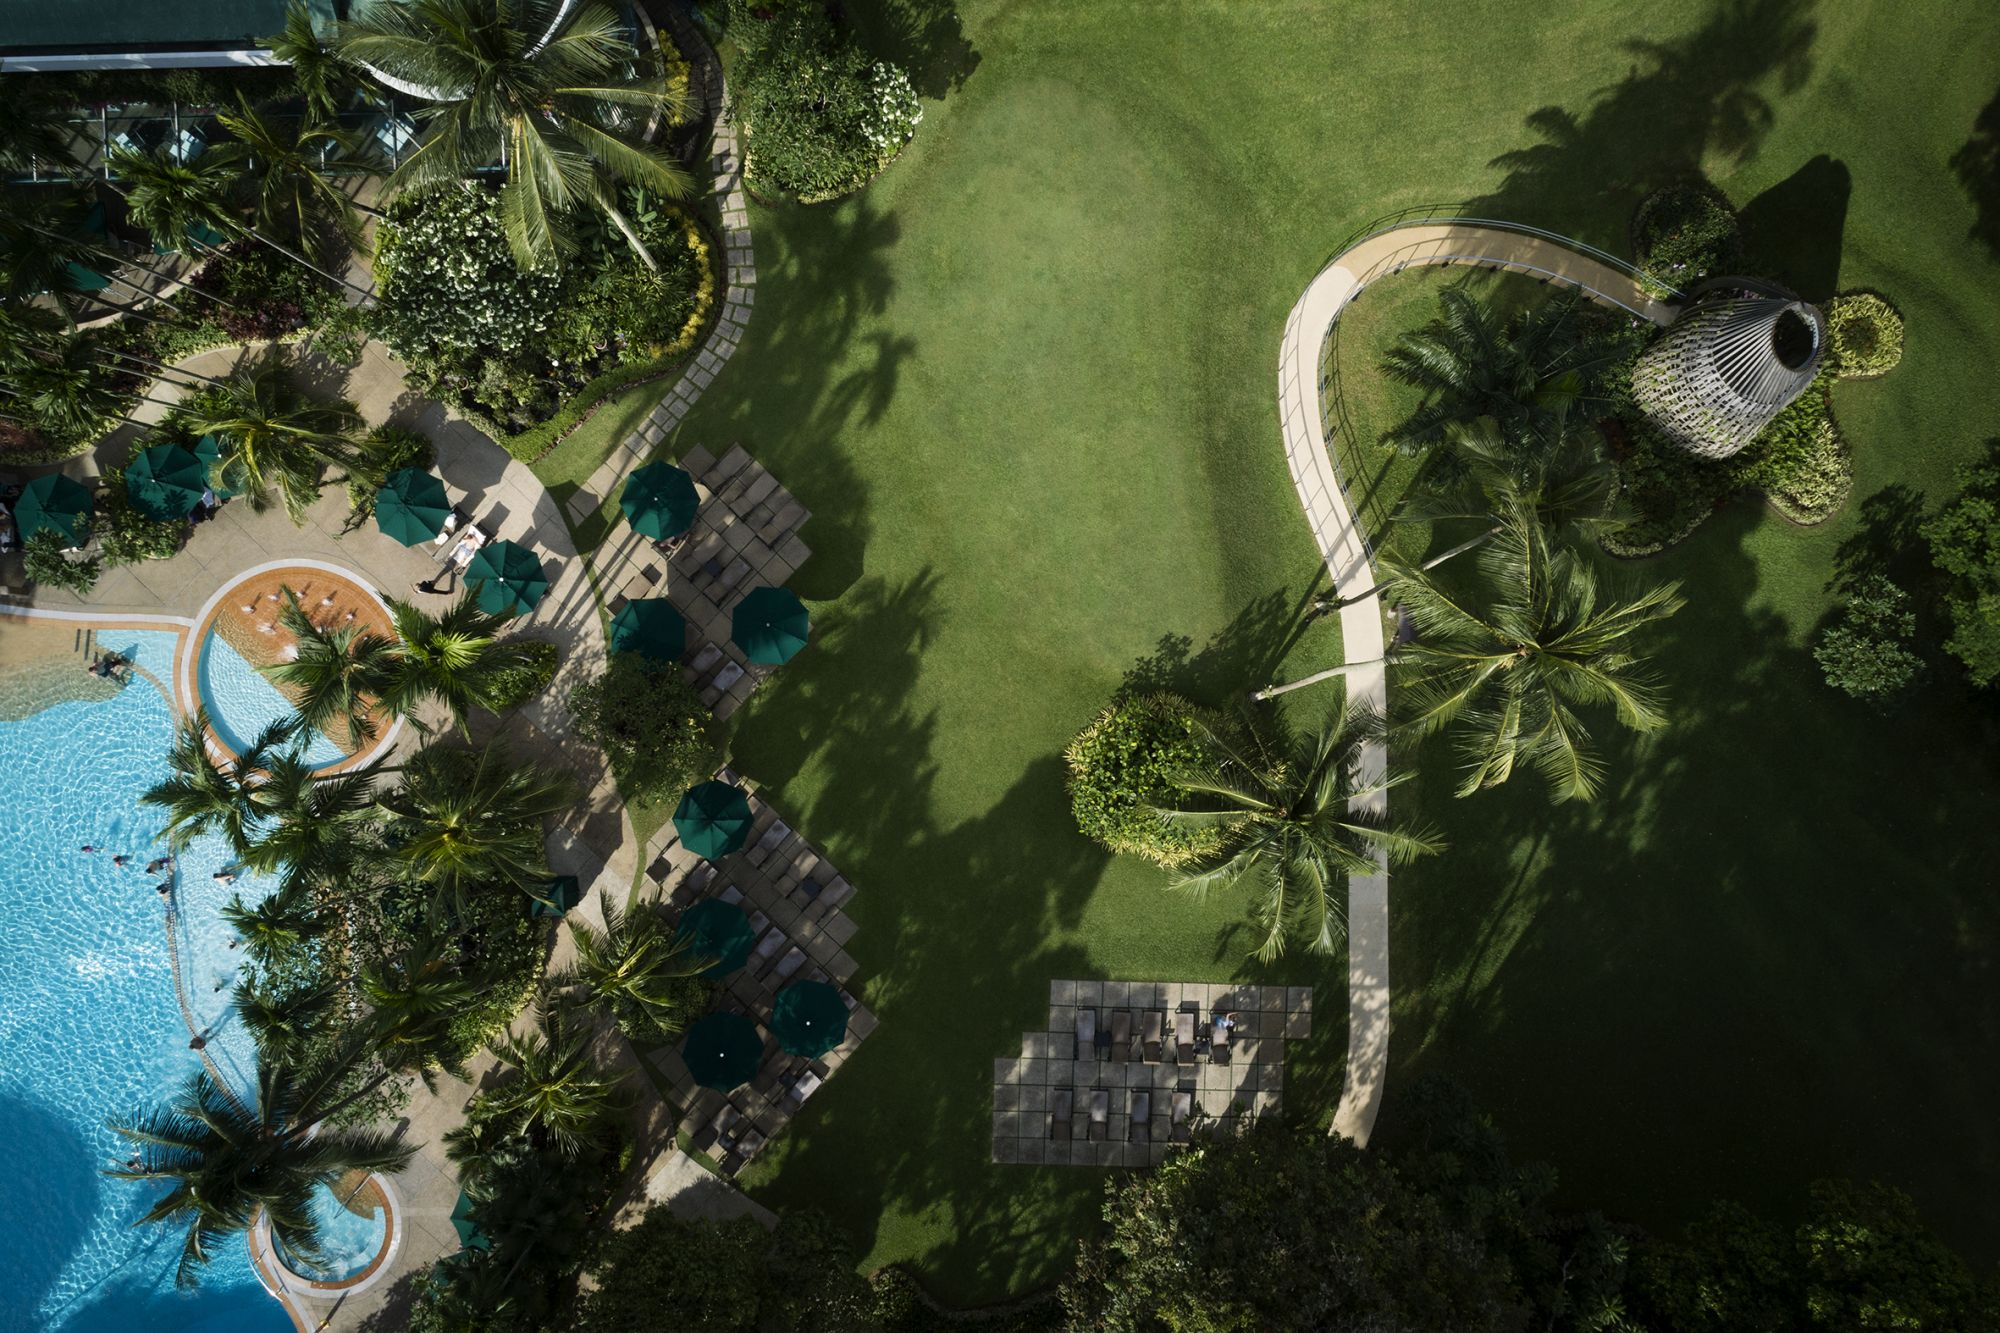 Shangri-La Hotel Singapore, Valley Wing: Hotel Staycation Review